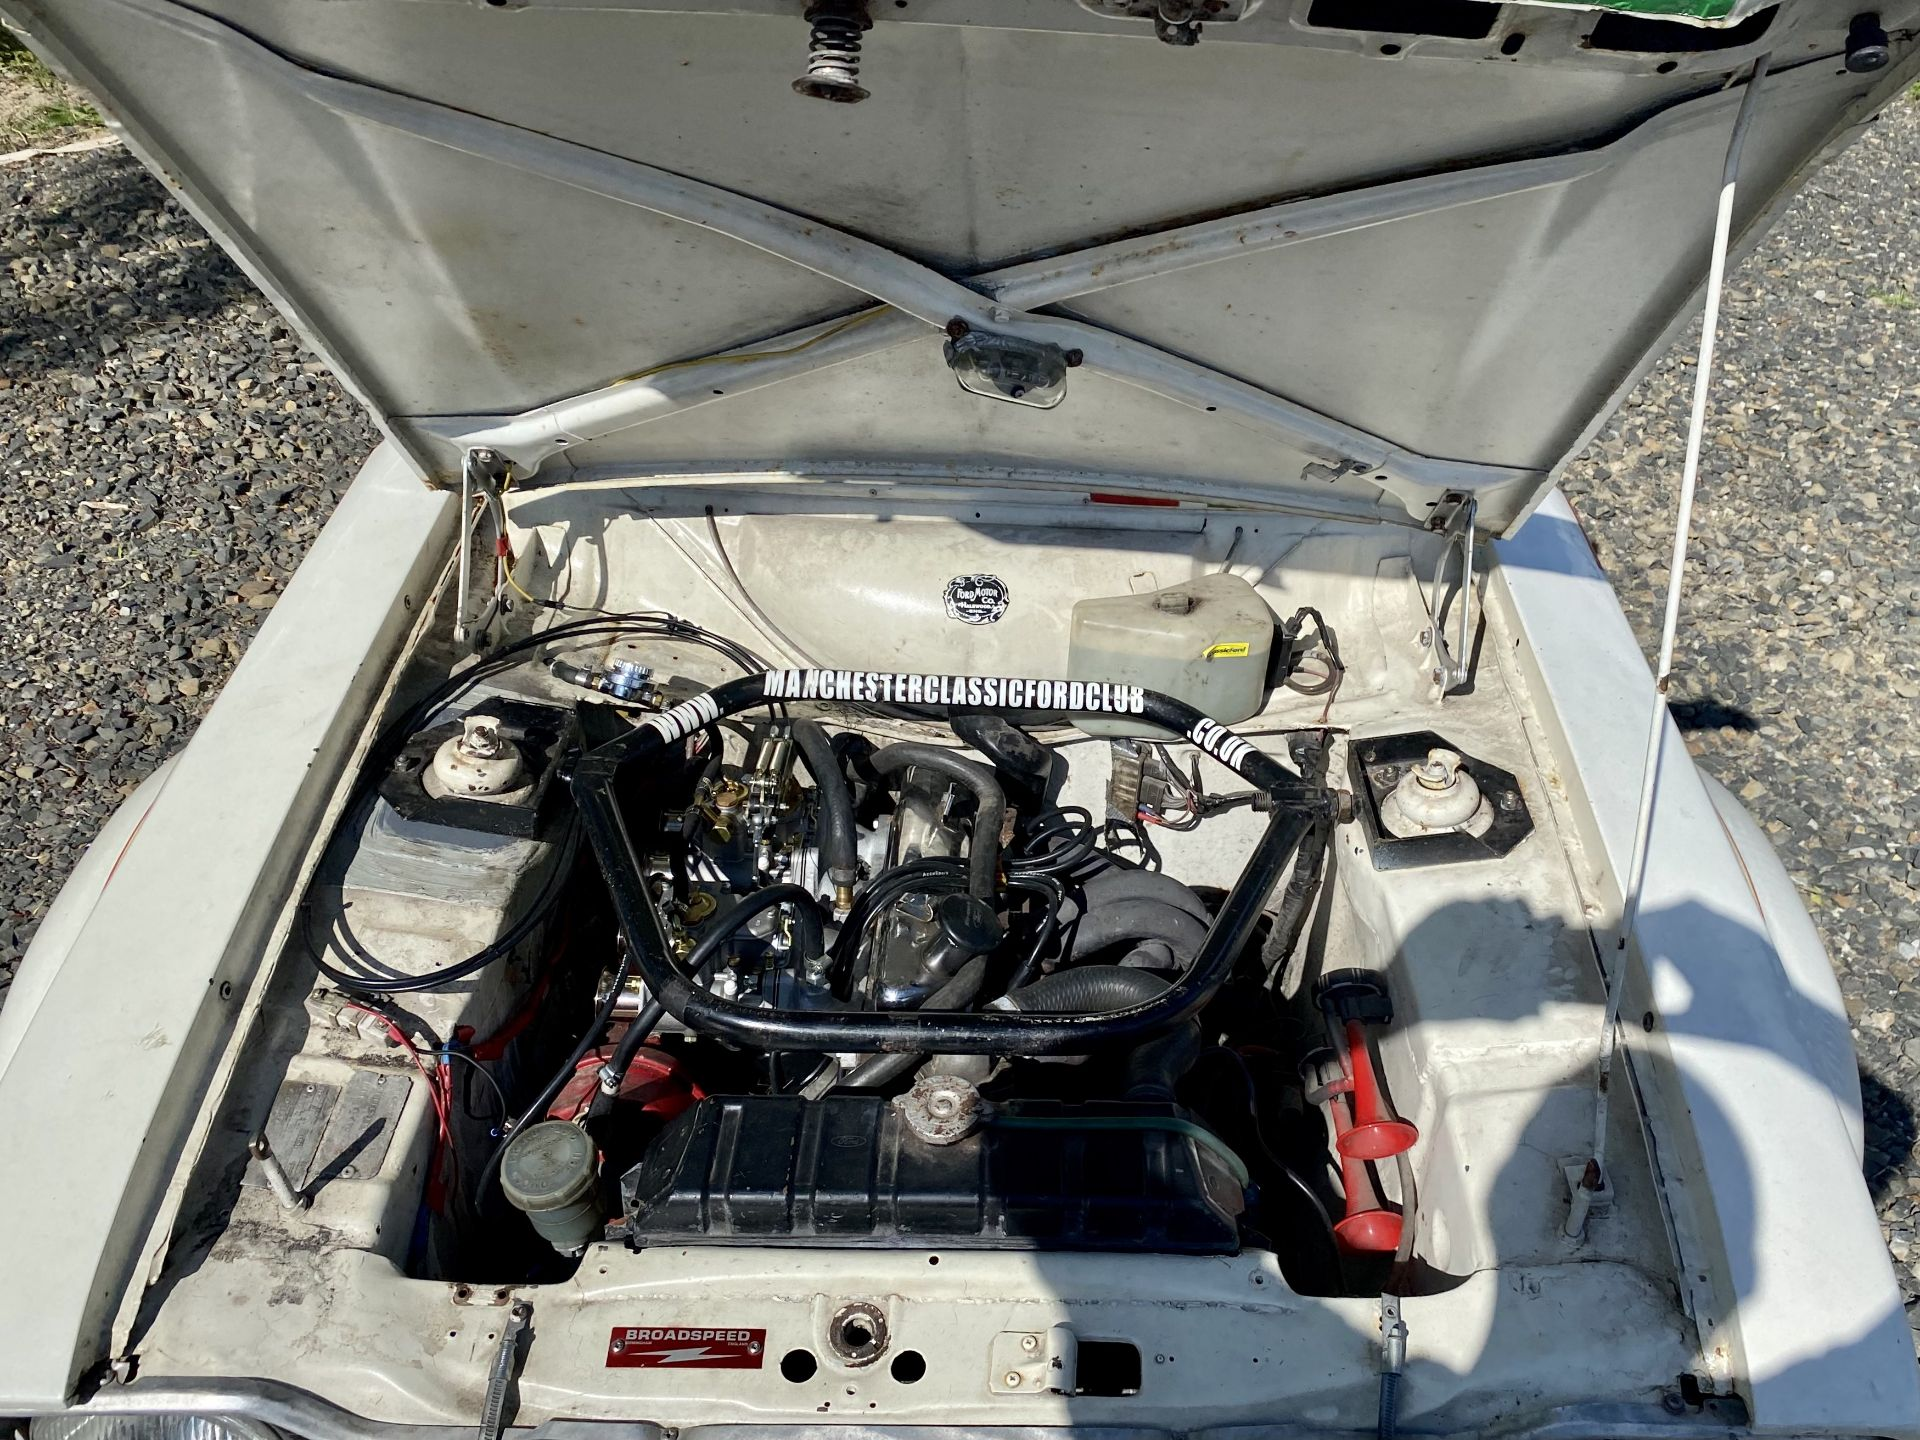 Ford Escort Mexico - Image 43 of 51